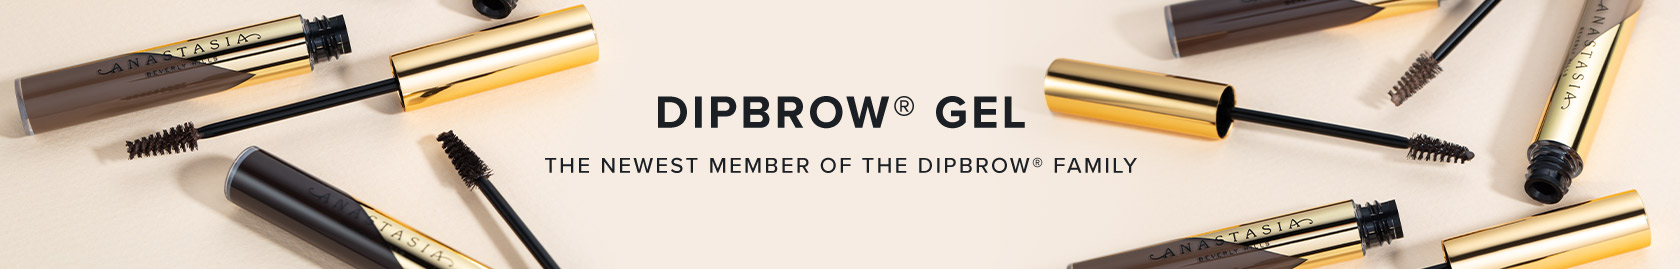 Dipbrow Gel - The newest member of the dipbrow family